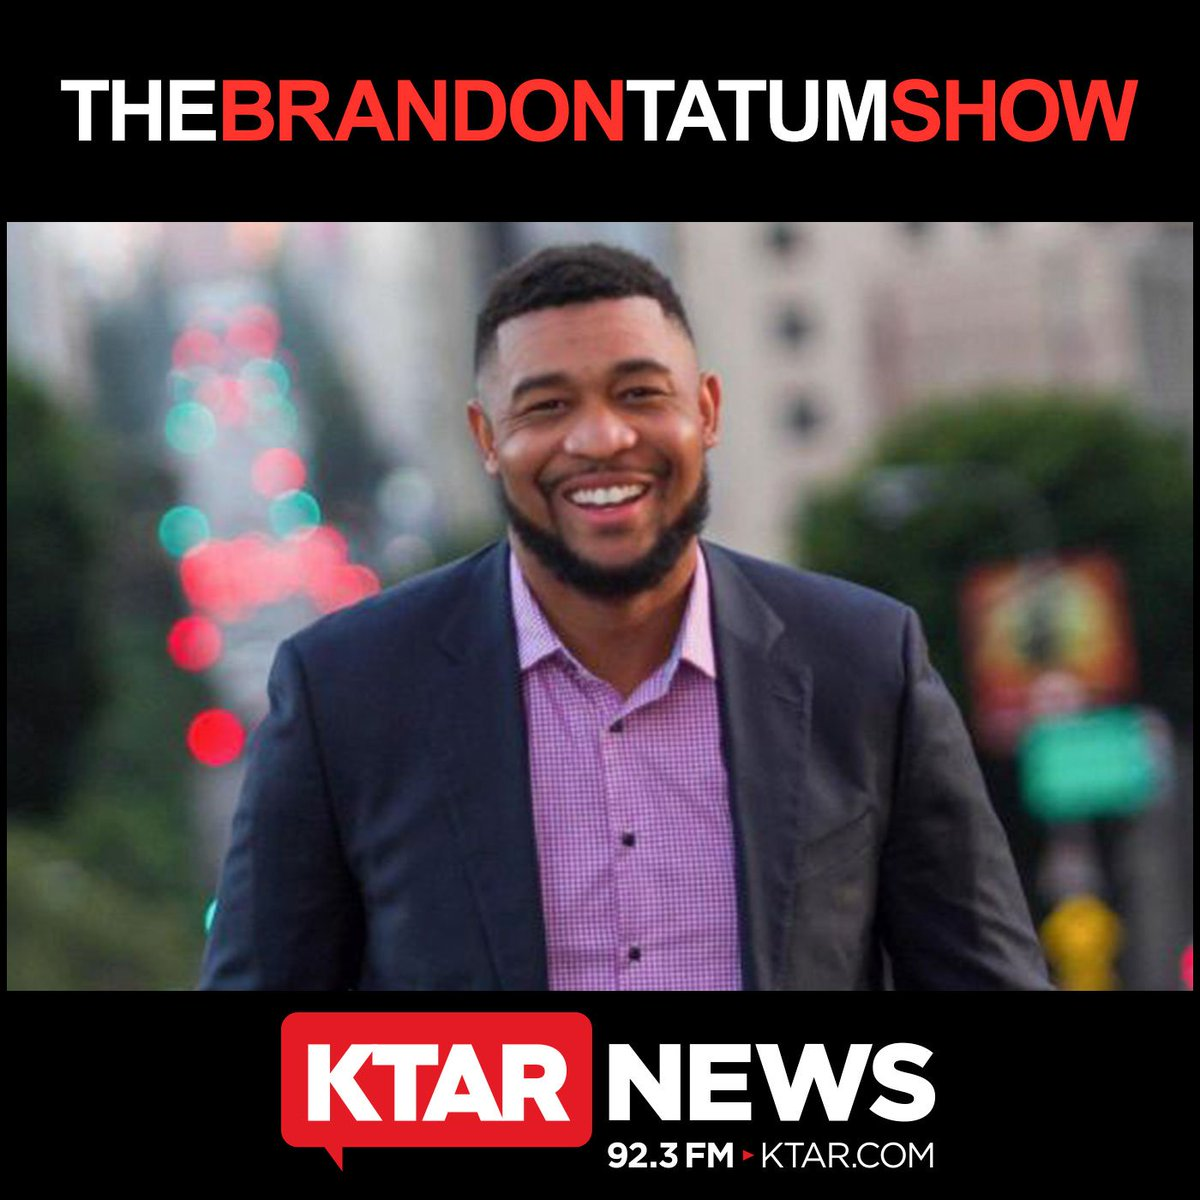 ‼Announcement‼ I'm proud to announce my FIRST- very own radio show with @KTAR923 I will be live on Air every Saturday at 6 pm starting Sep. 7 in Phx AZ! The show will be syndicated & available everywhere through podcast. KTAR app available in App Store for Apple & Android.